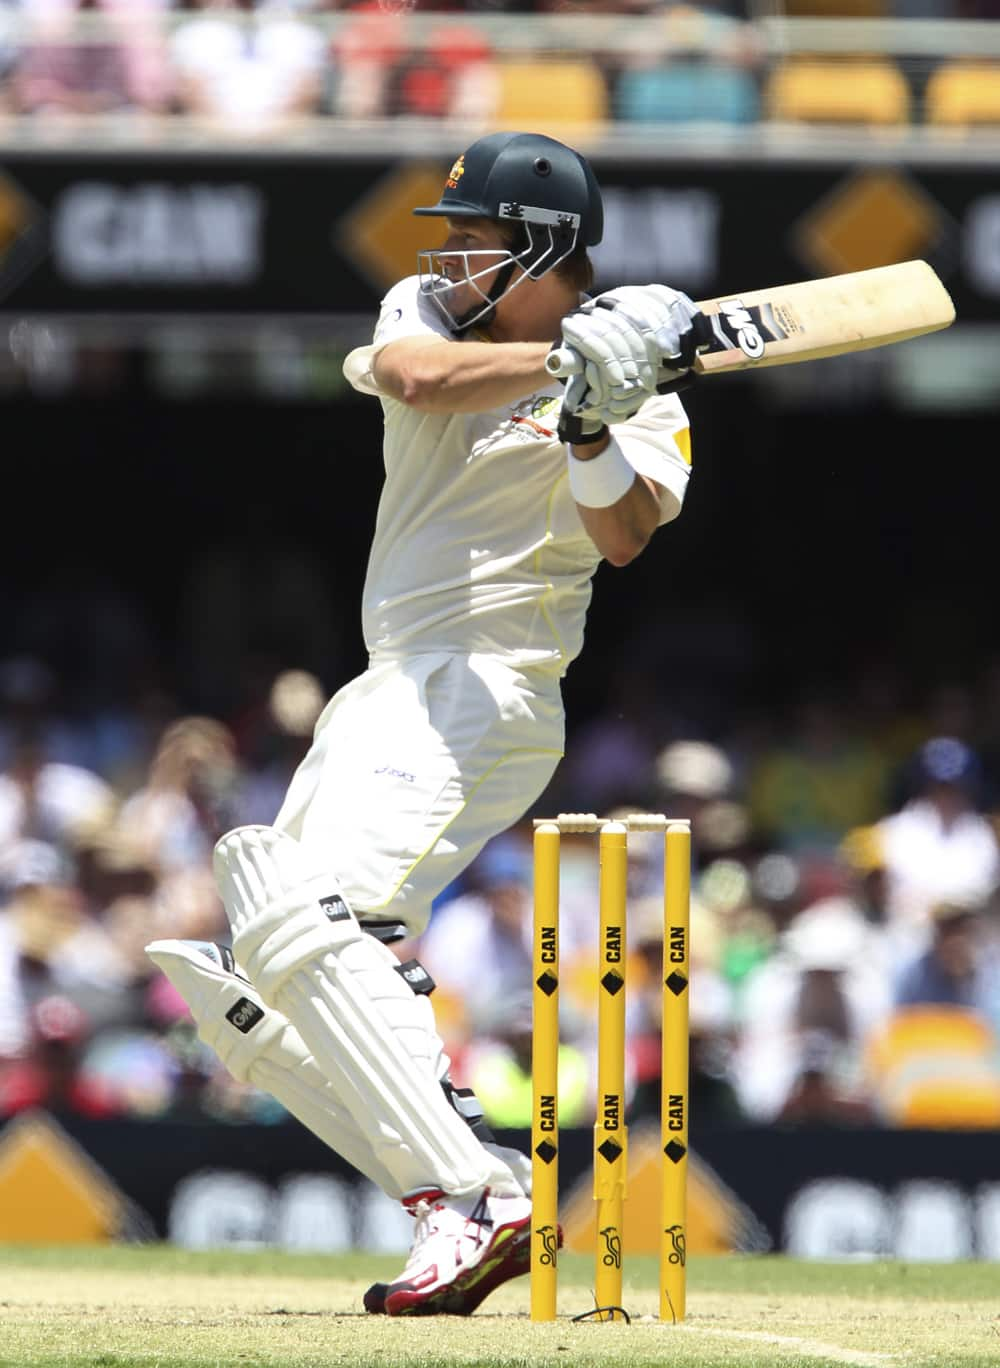 Shane Watson plays a shot on the first day of the series-opening Ashes test between England and Australia at the Gabba in Brisbane, Australia.